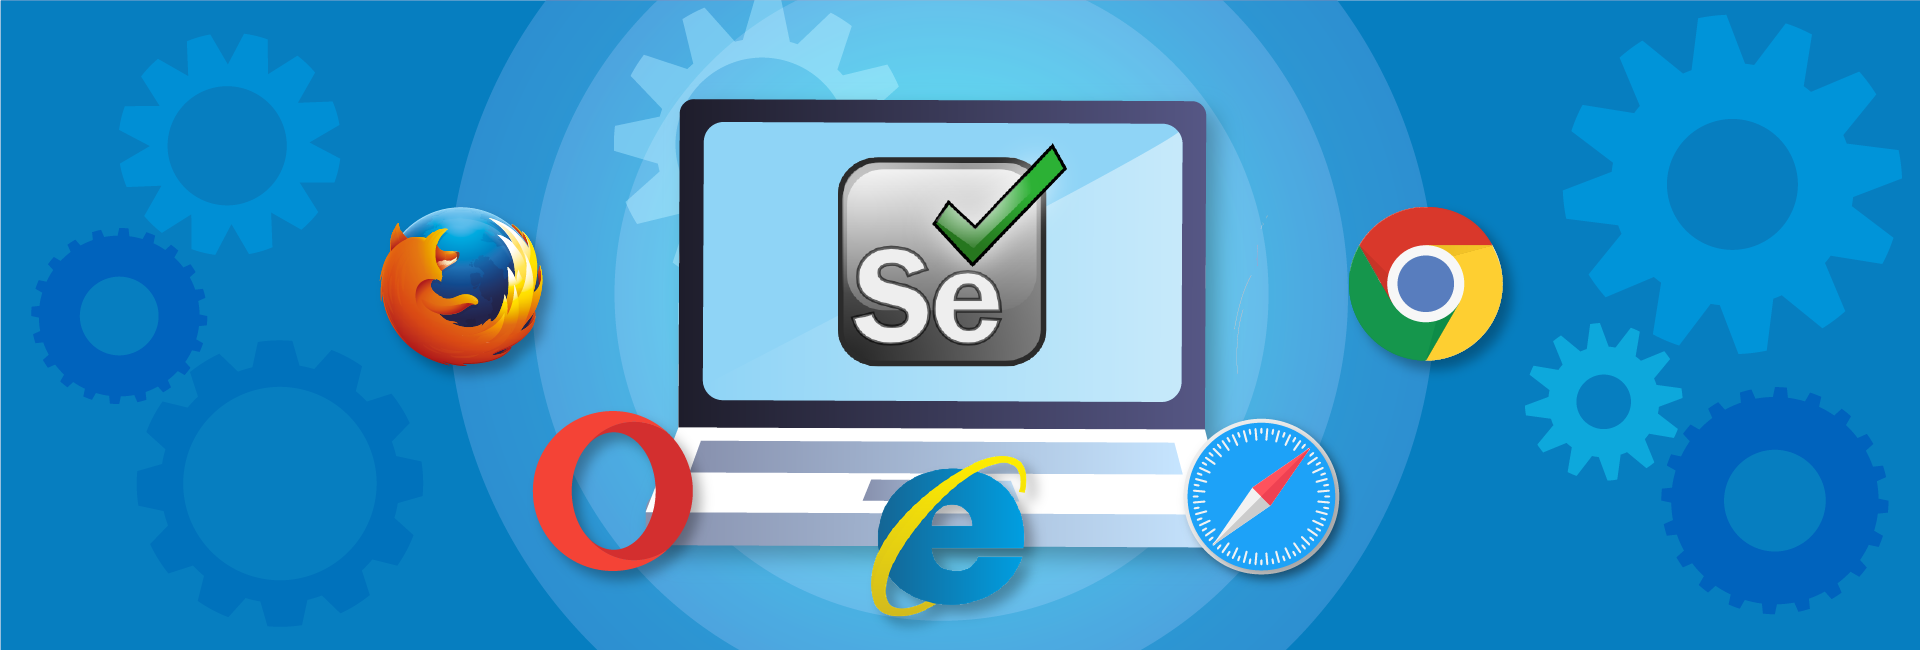 Selenium-based Automated Testing